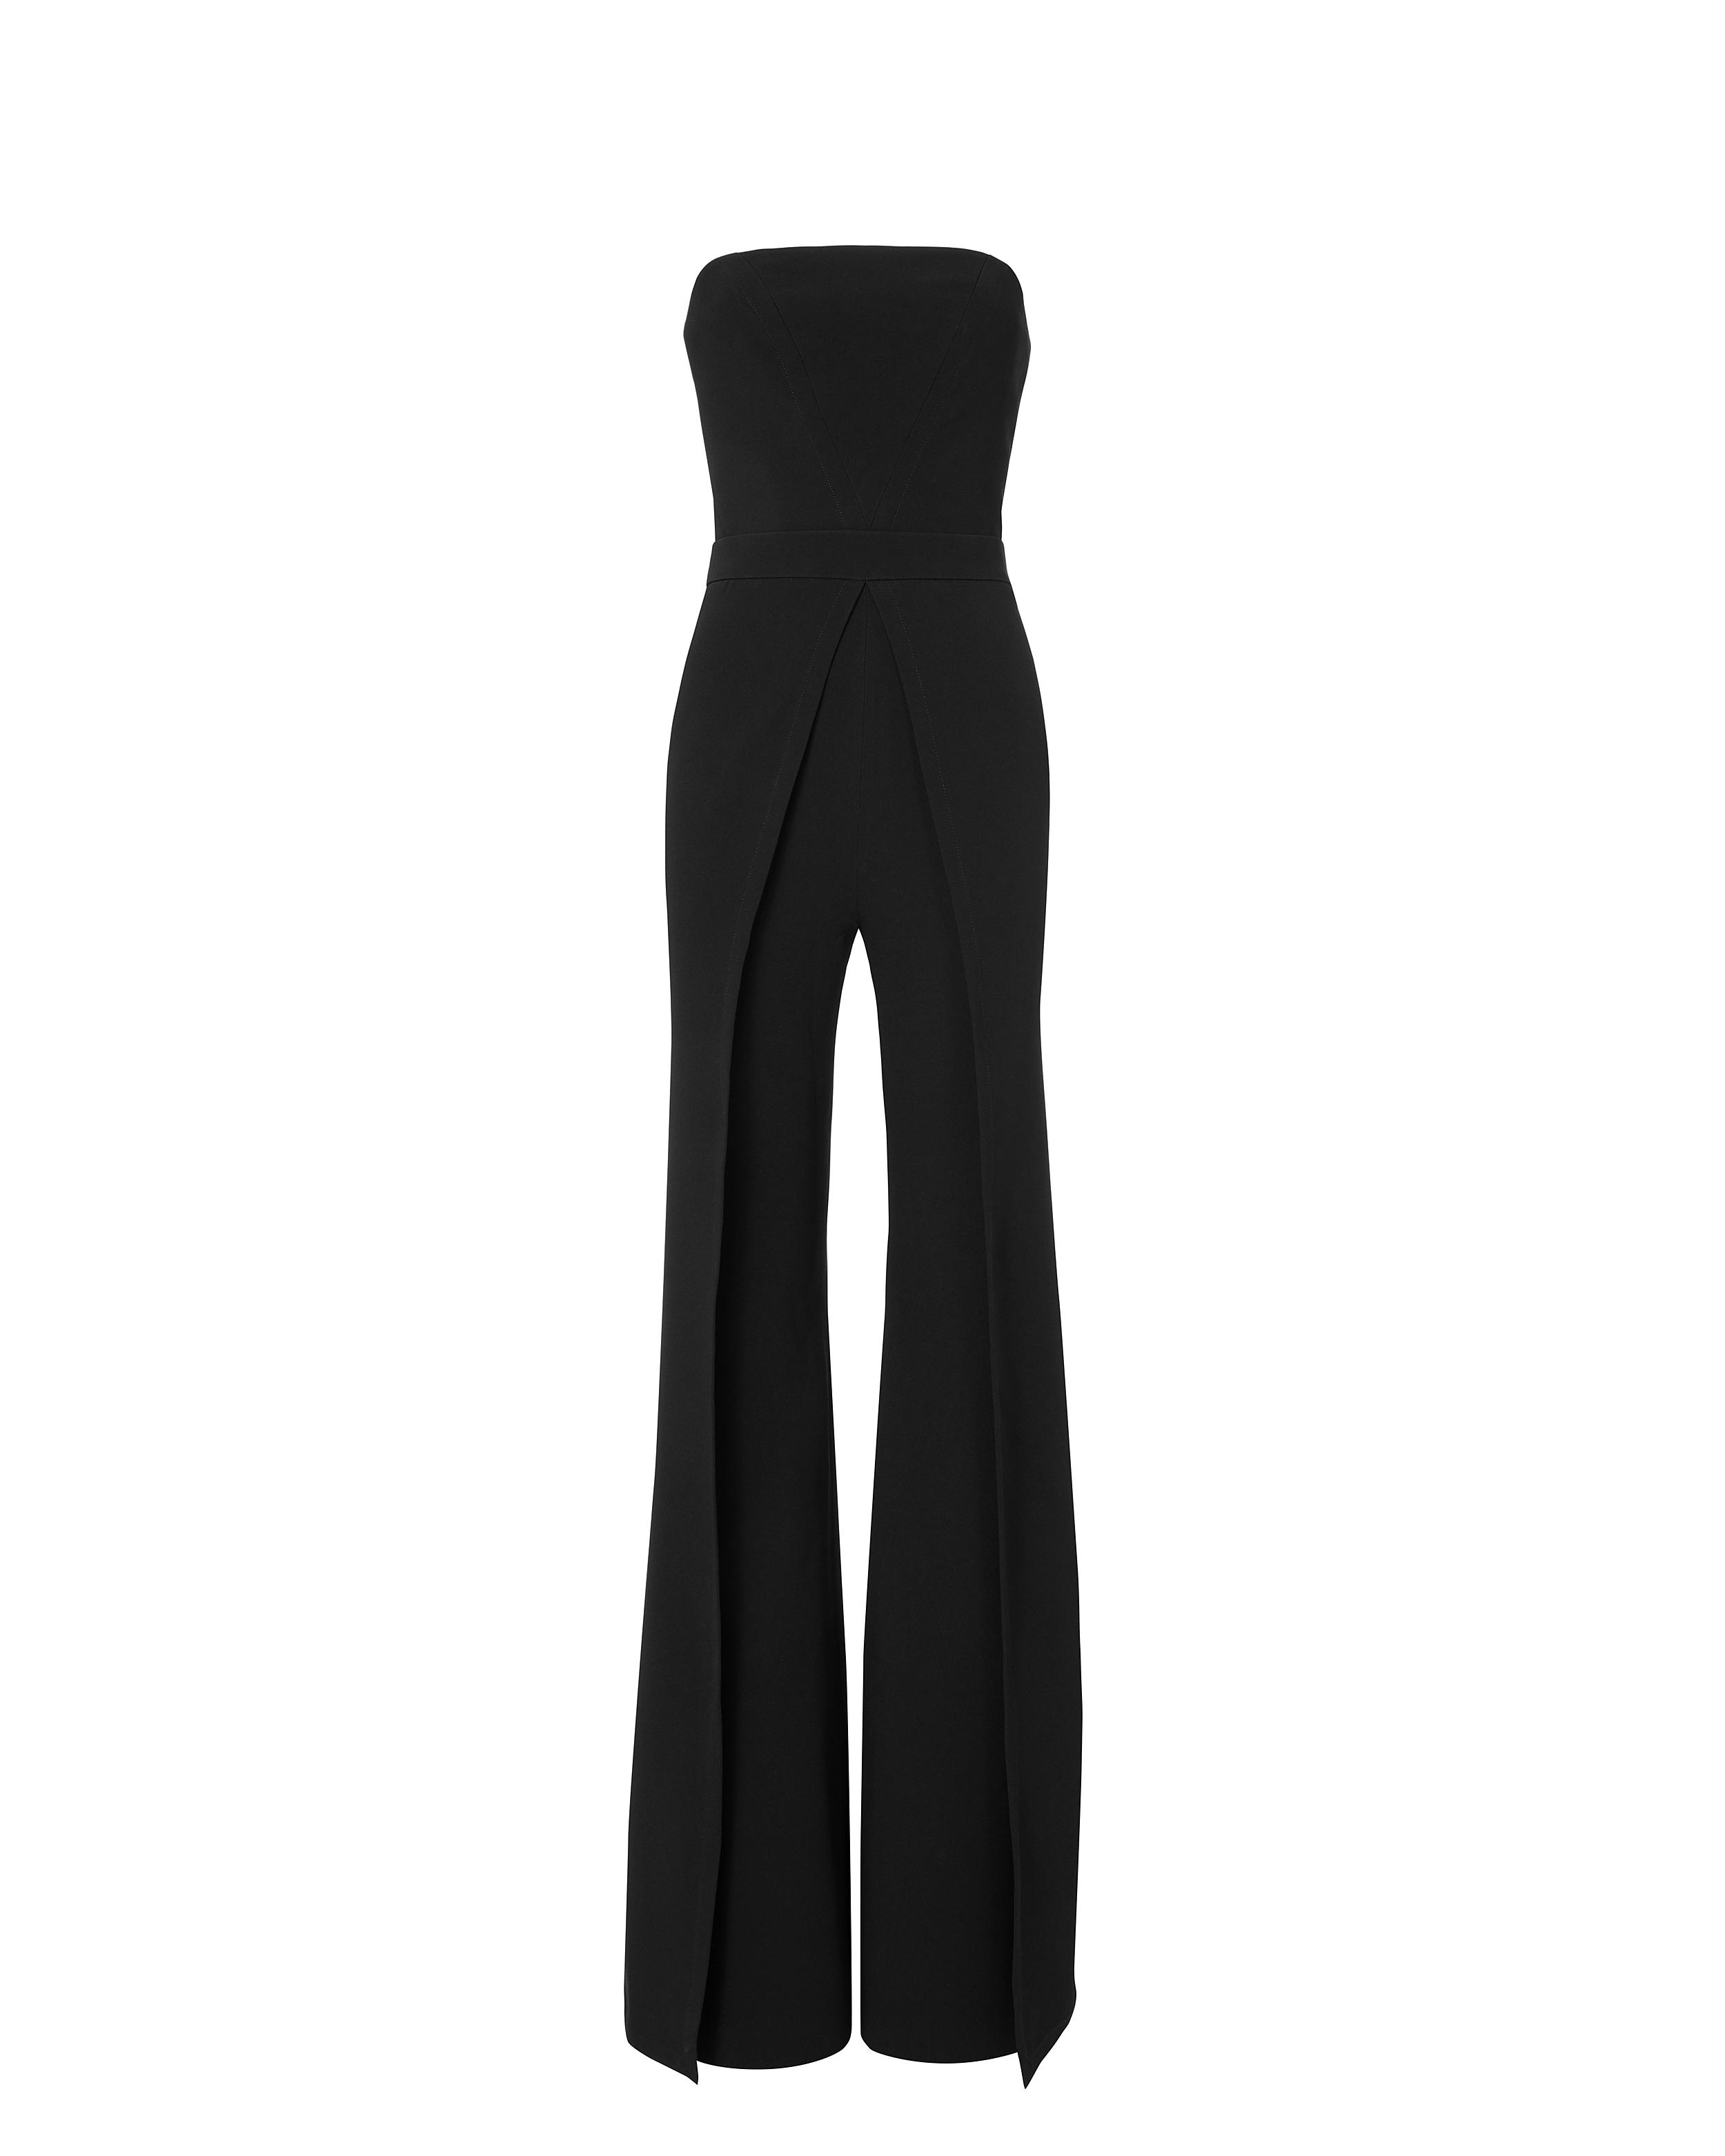 41d1e527827 Gallery. Previously sold at  INTERMIX · Women s Black Overalls ...